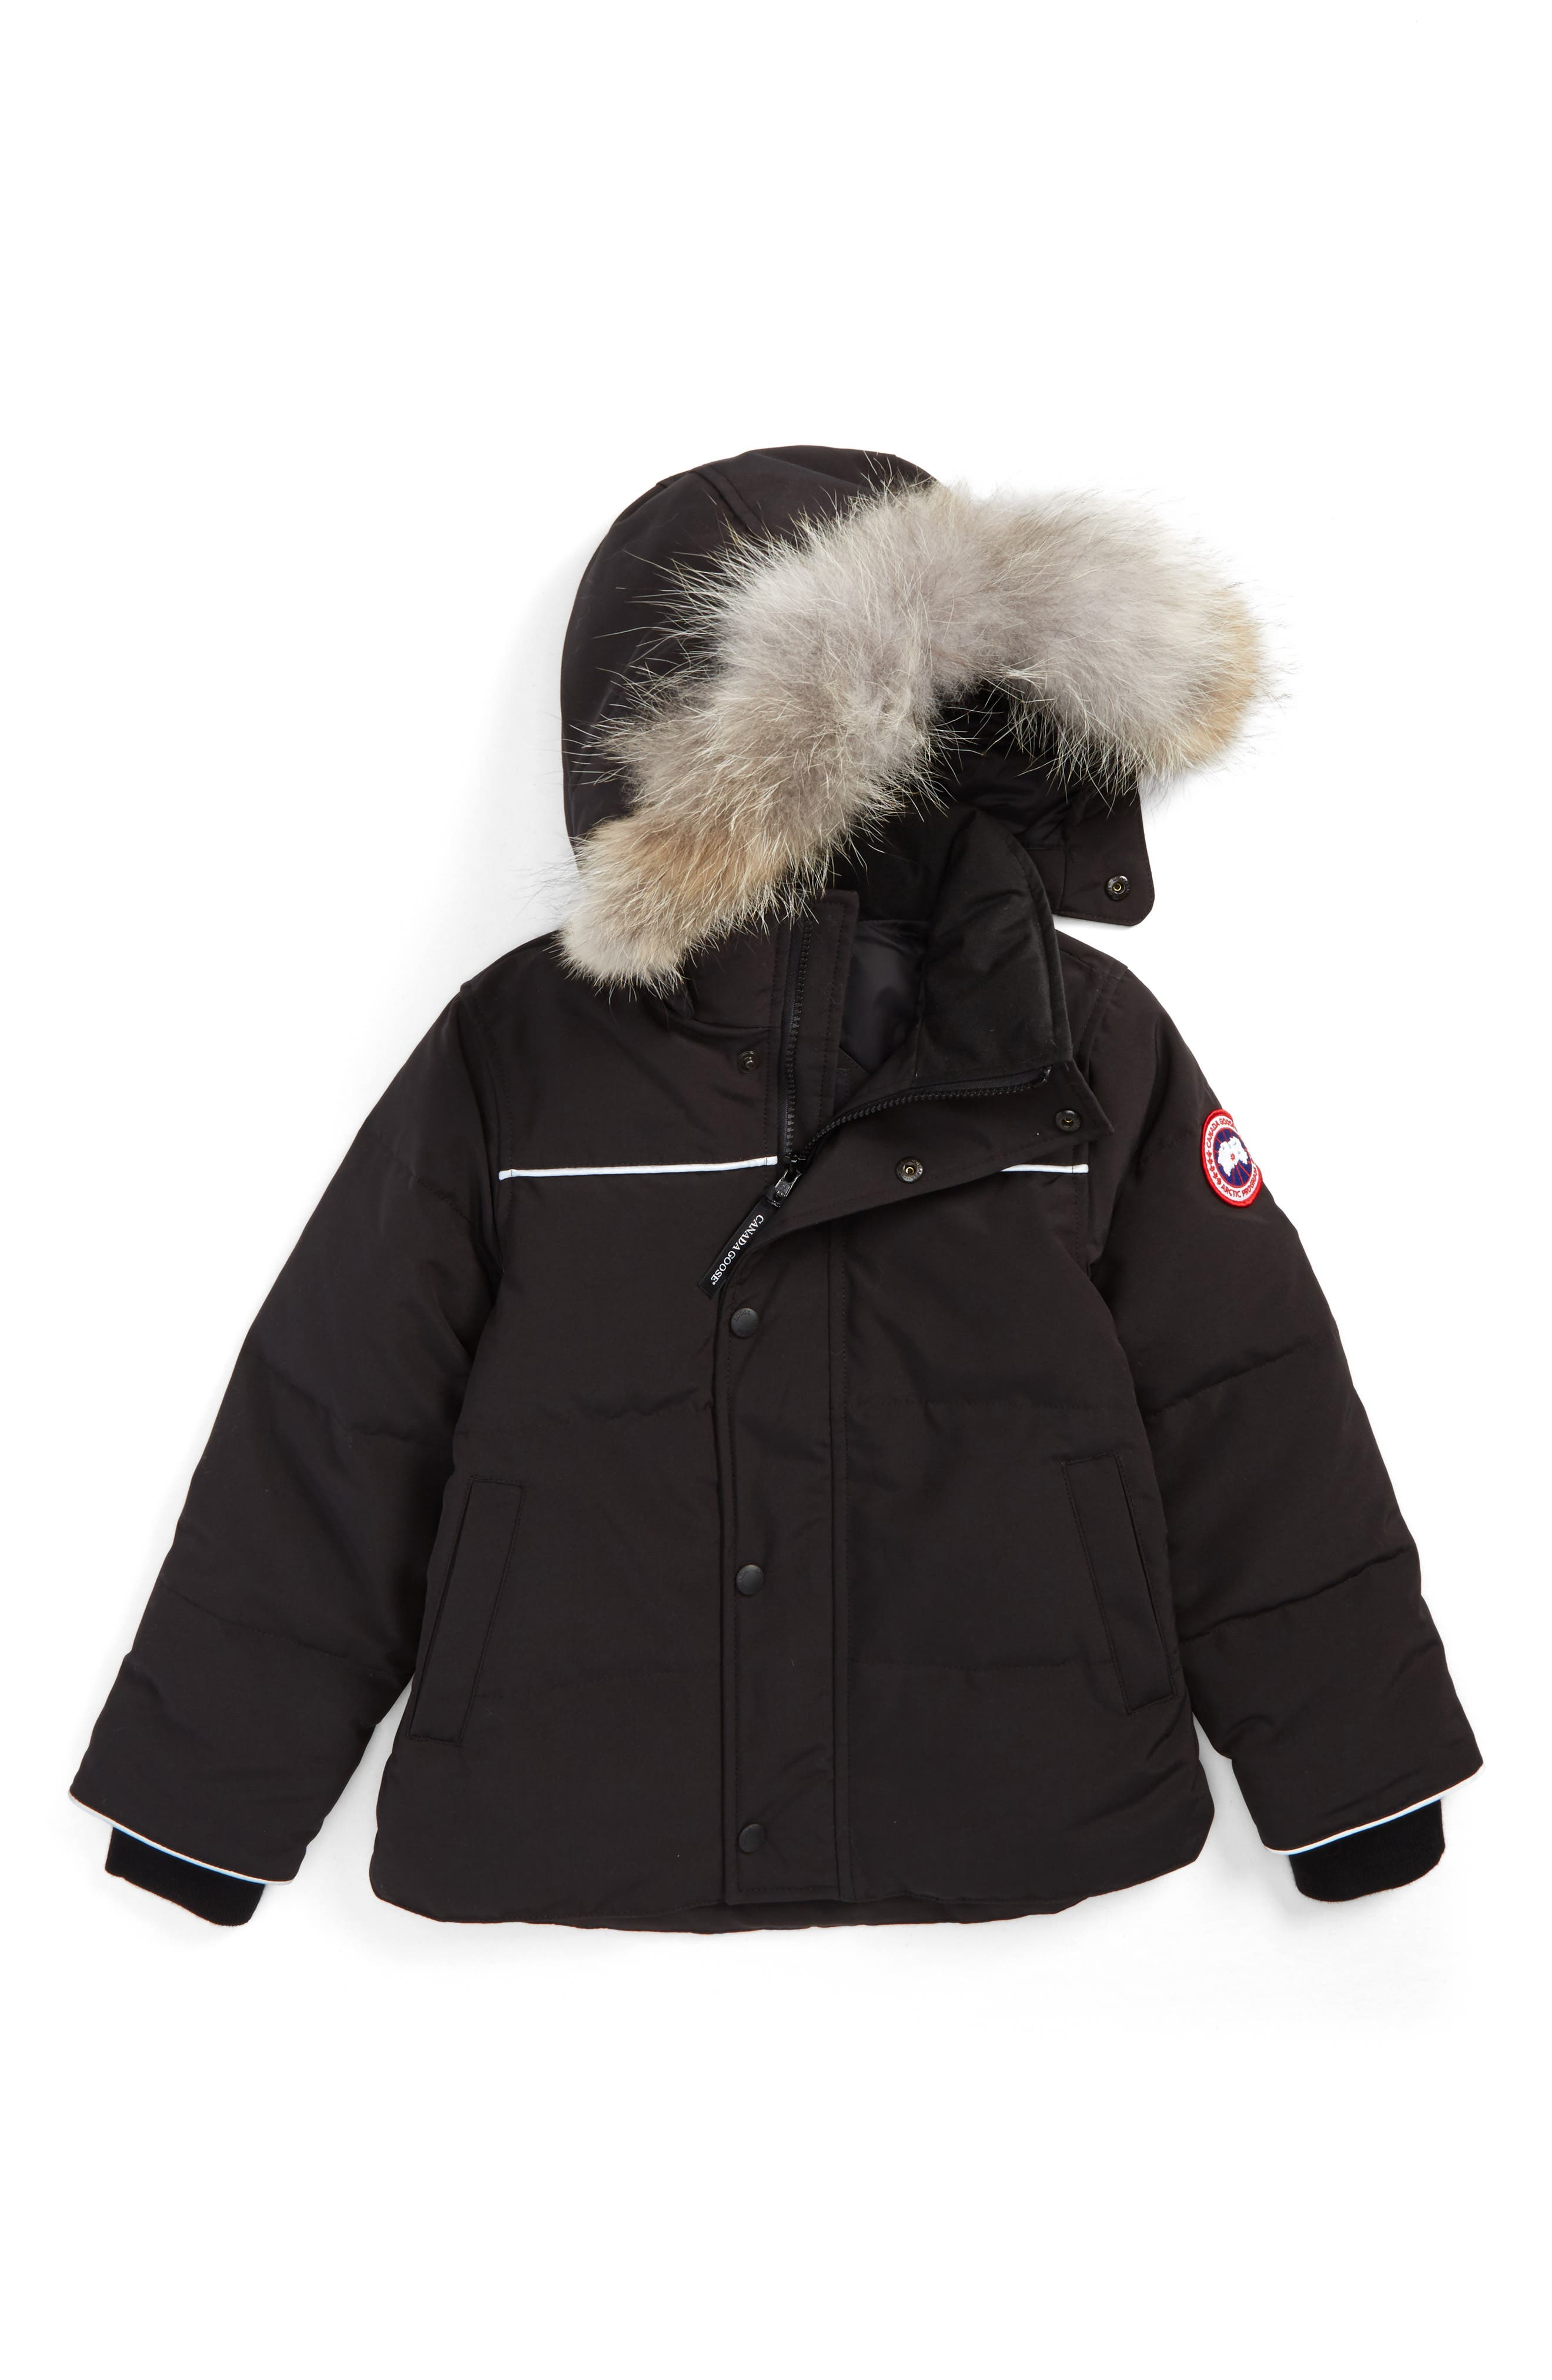 Main Image - Canada Goose Snowy Owl Down Parka with Genuine Coyote Fur Trim (Toddler Kids & Little Kids)